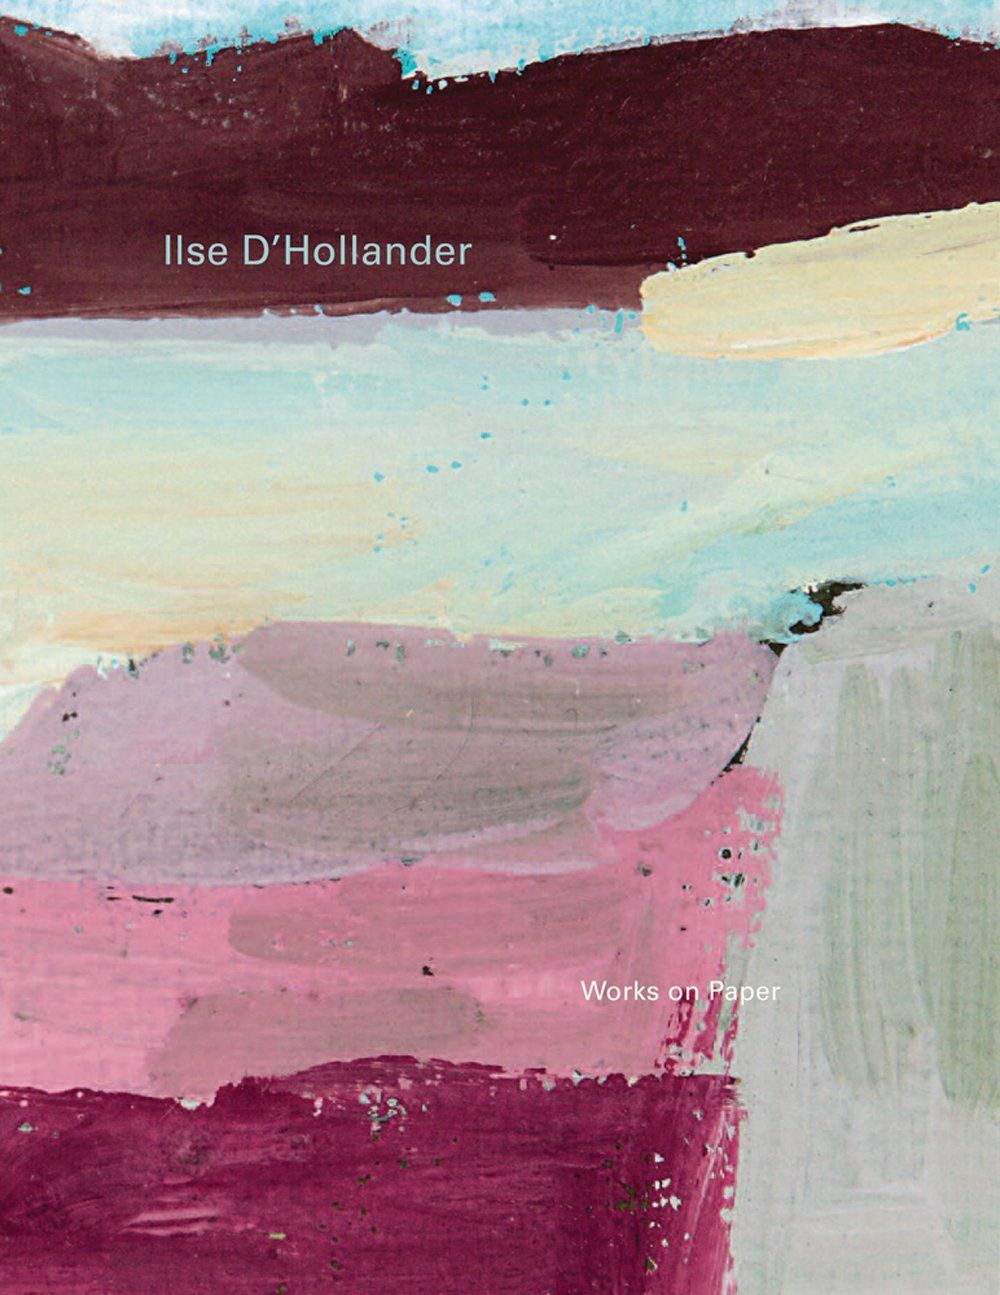 Ilse D'Hollander Sean Kelly Gallery